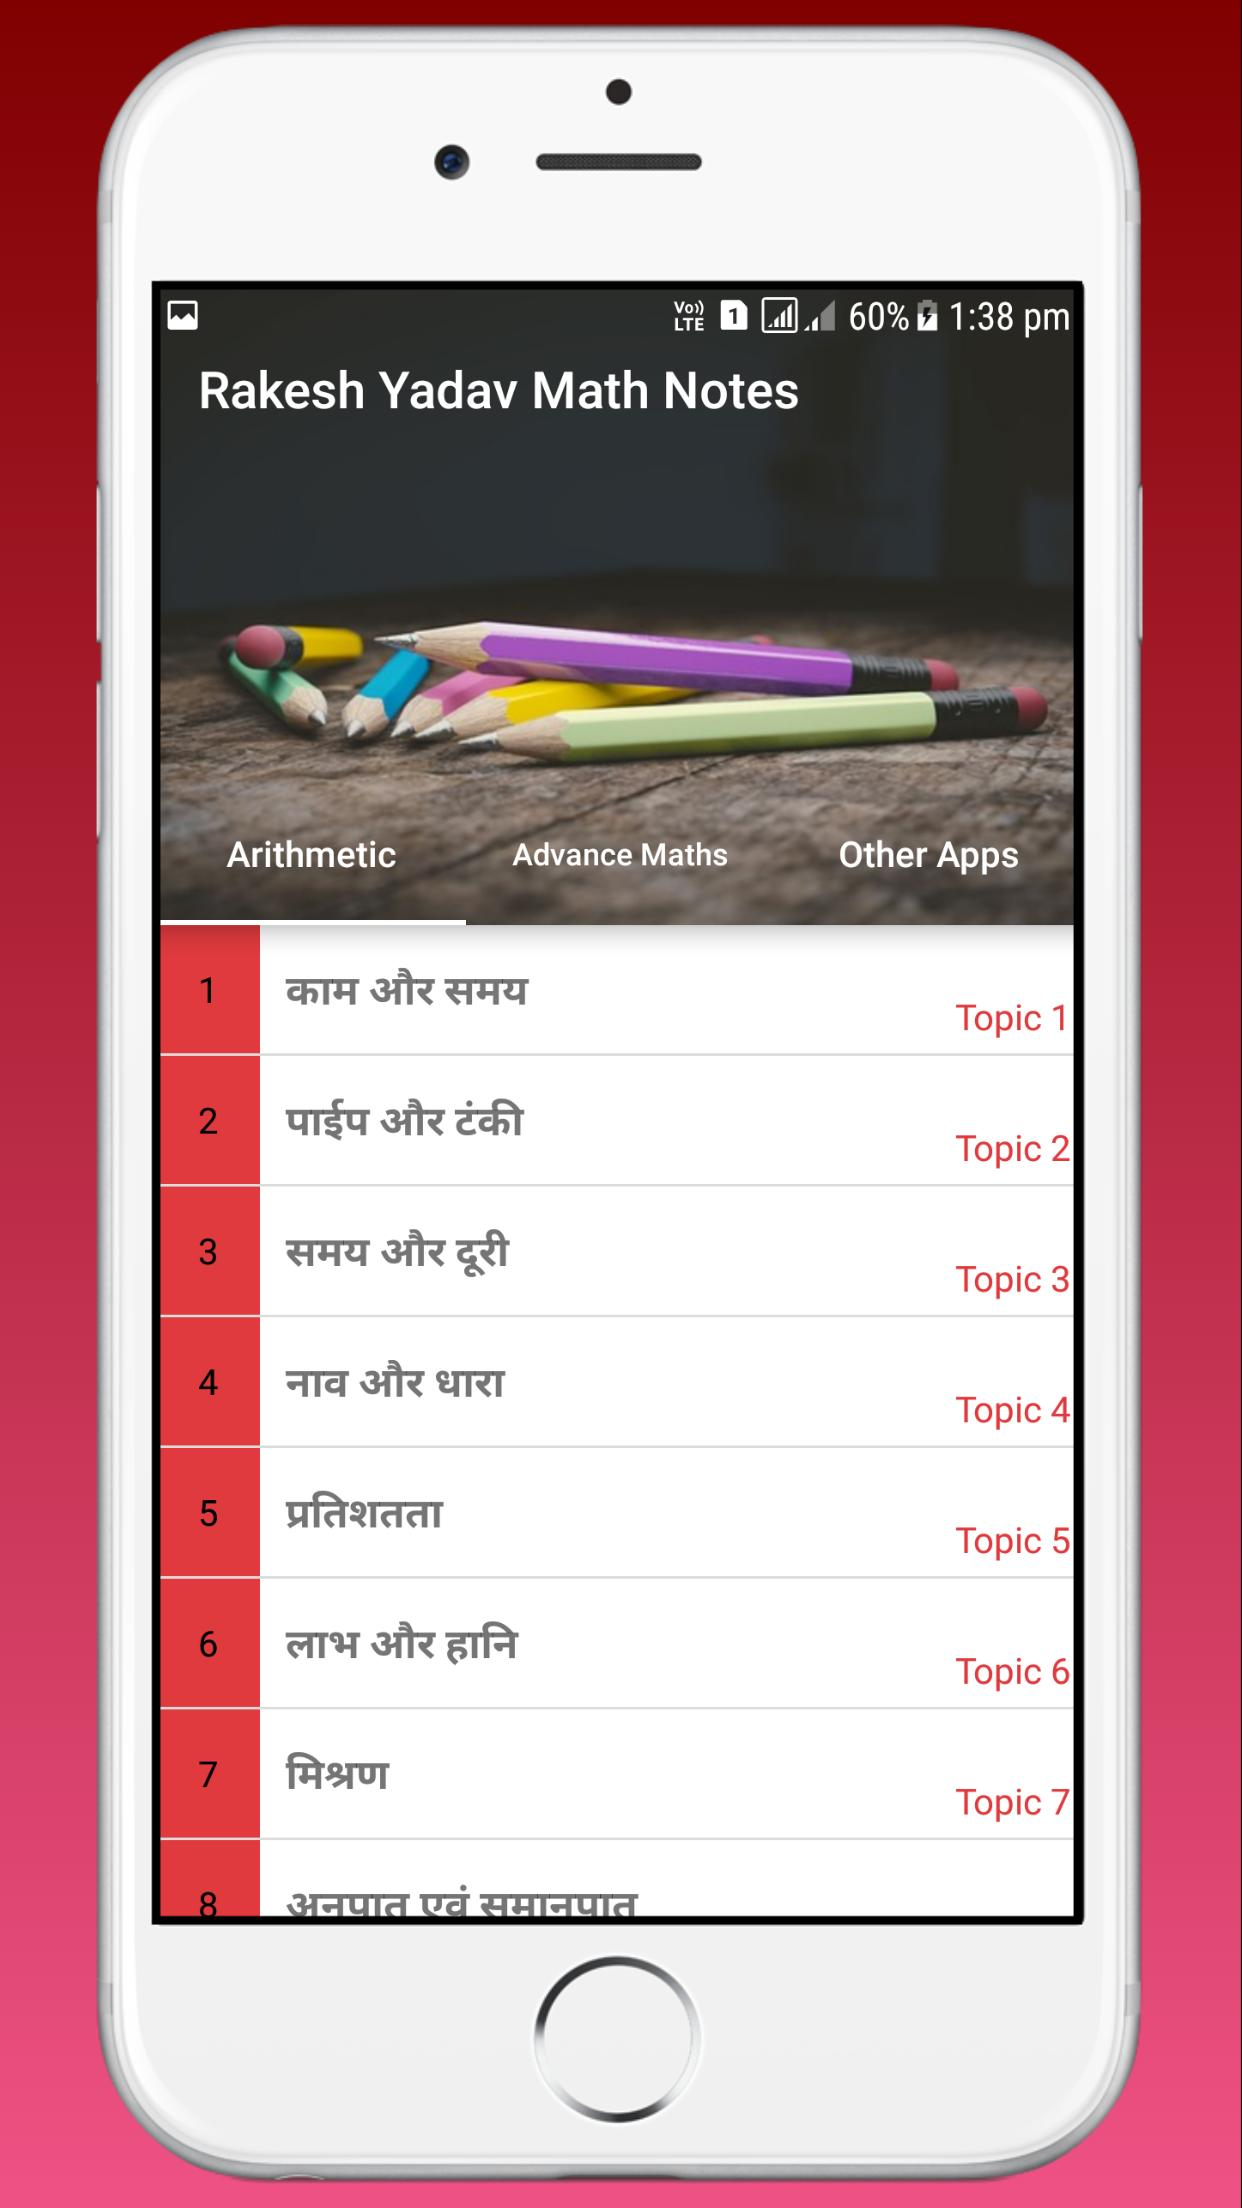 Rakesh Yadav Class Notes of Maths in Hindi Offline for Android - APK